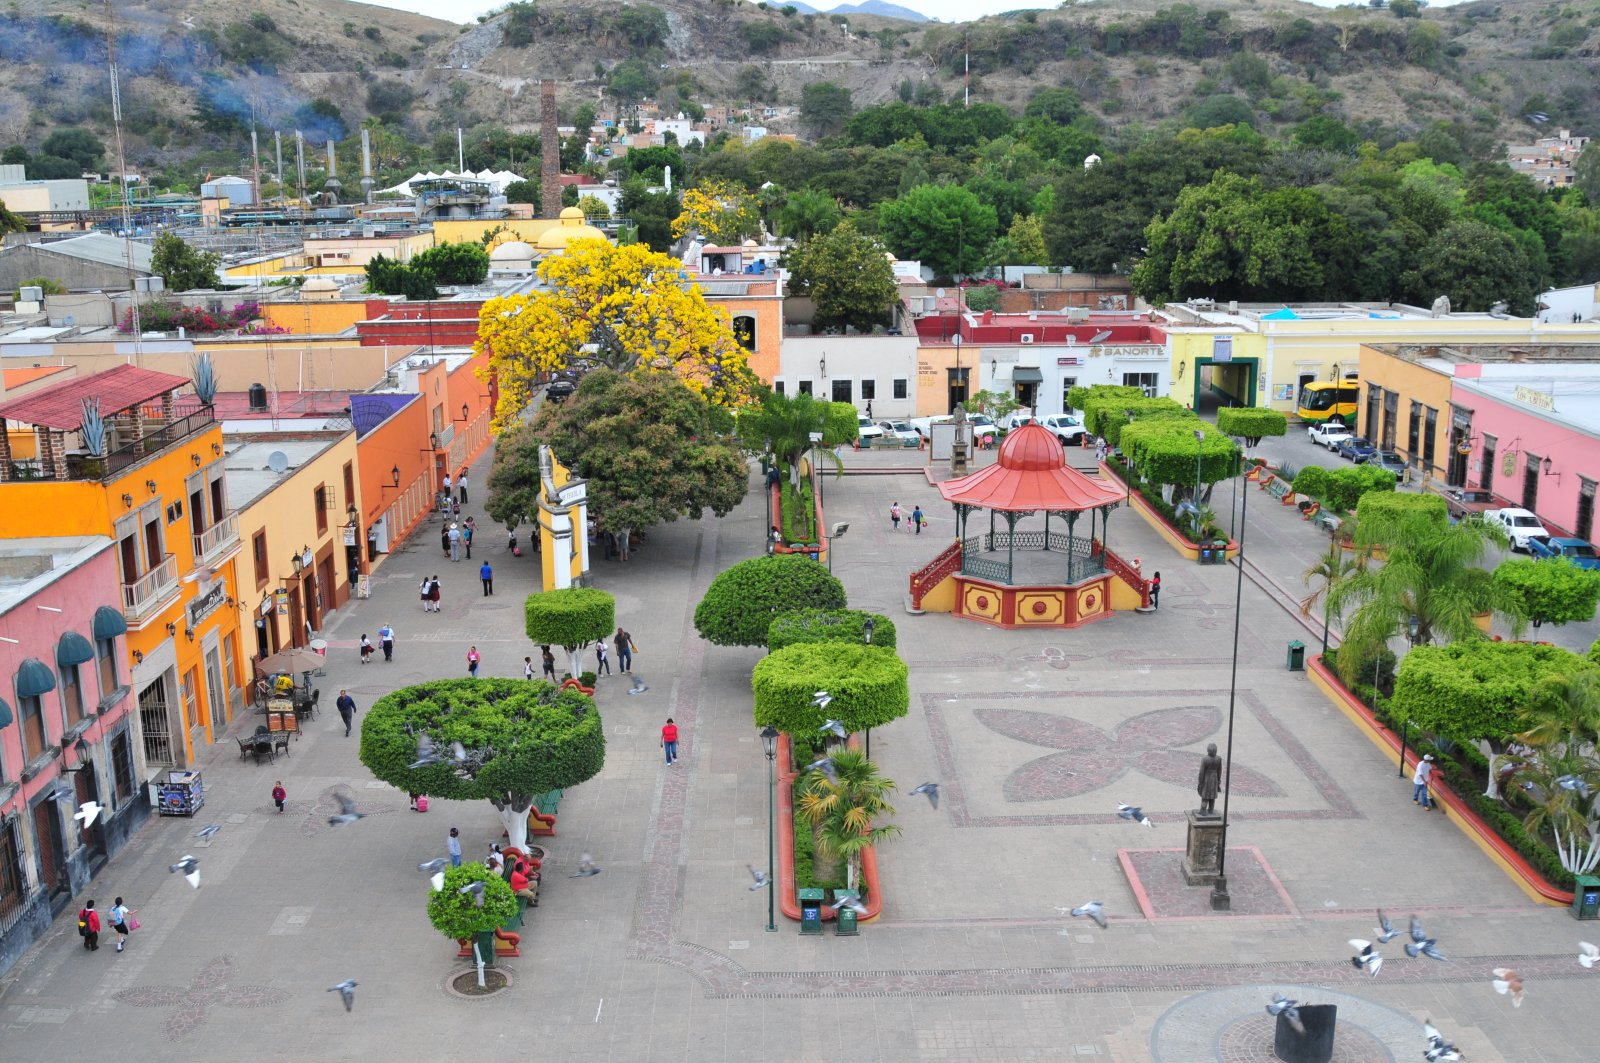 Tequila Town Plaza